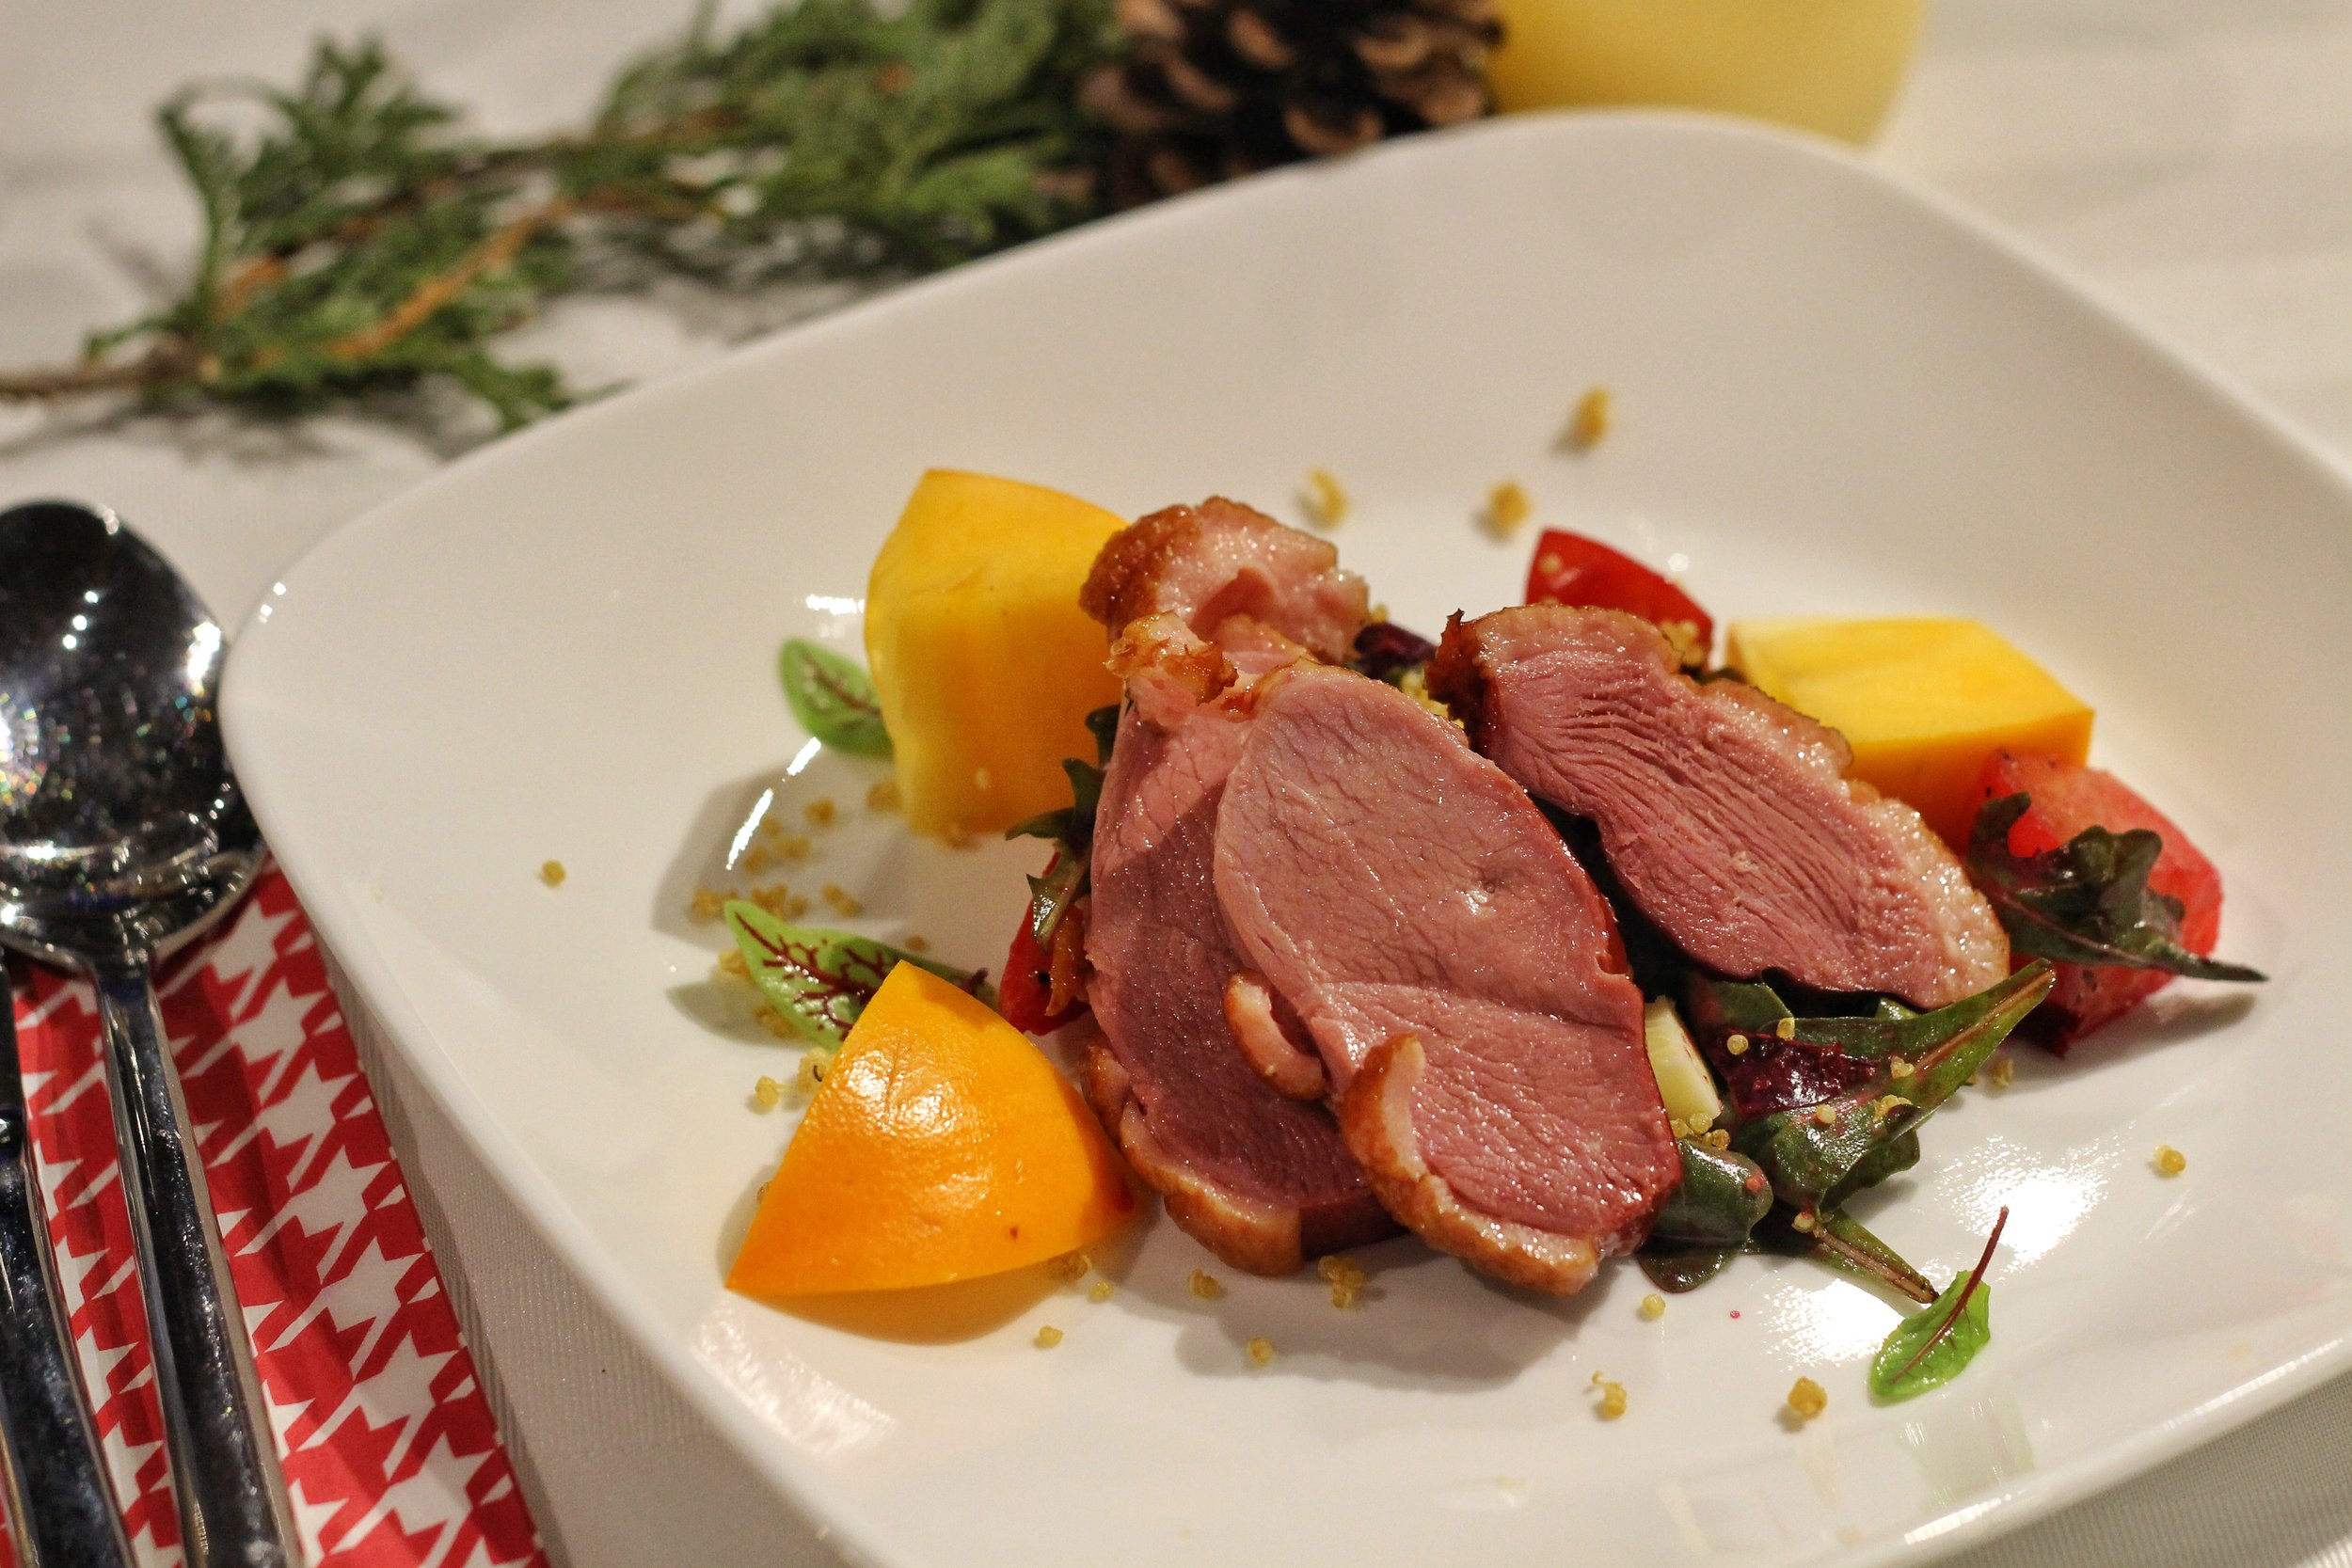 King Cole Farms House Smoked Duck Breast Salad  - Baby Beets, Persimmon, Blue Cheese, Arugula, Quinoa & Lemon Parmesan Dressing